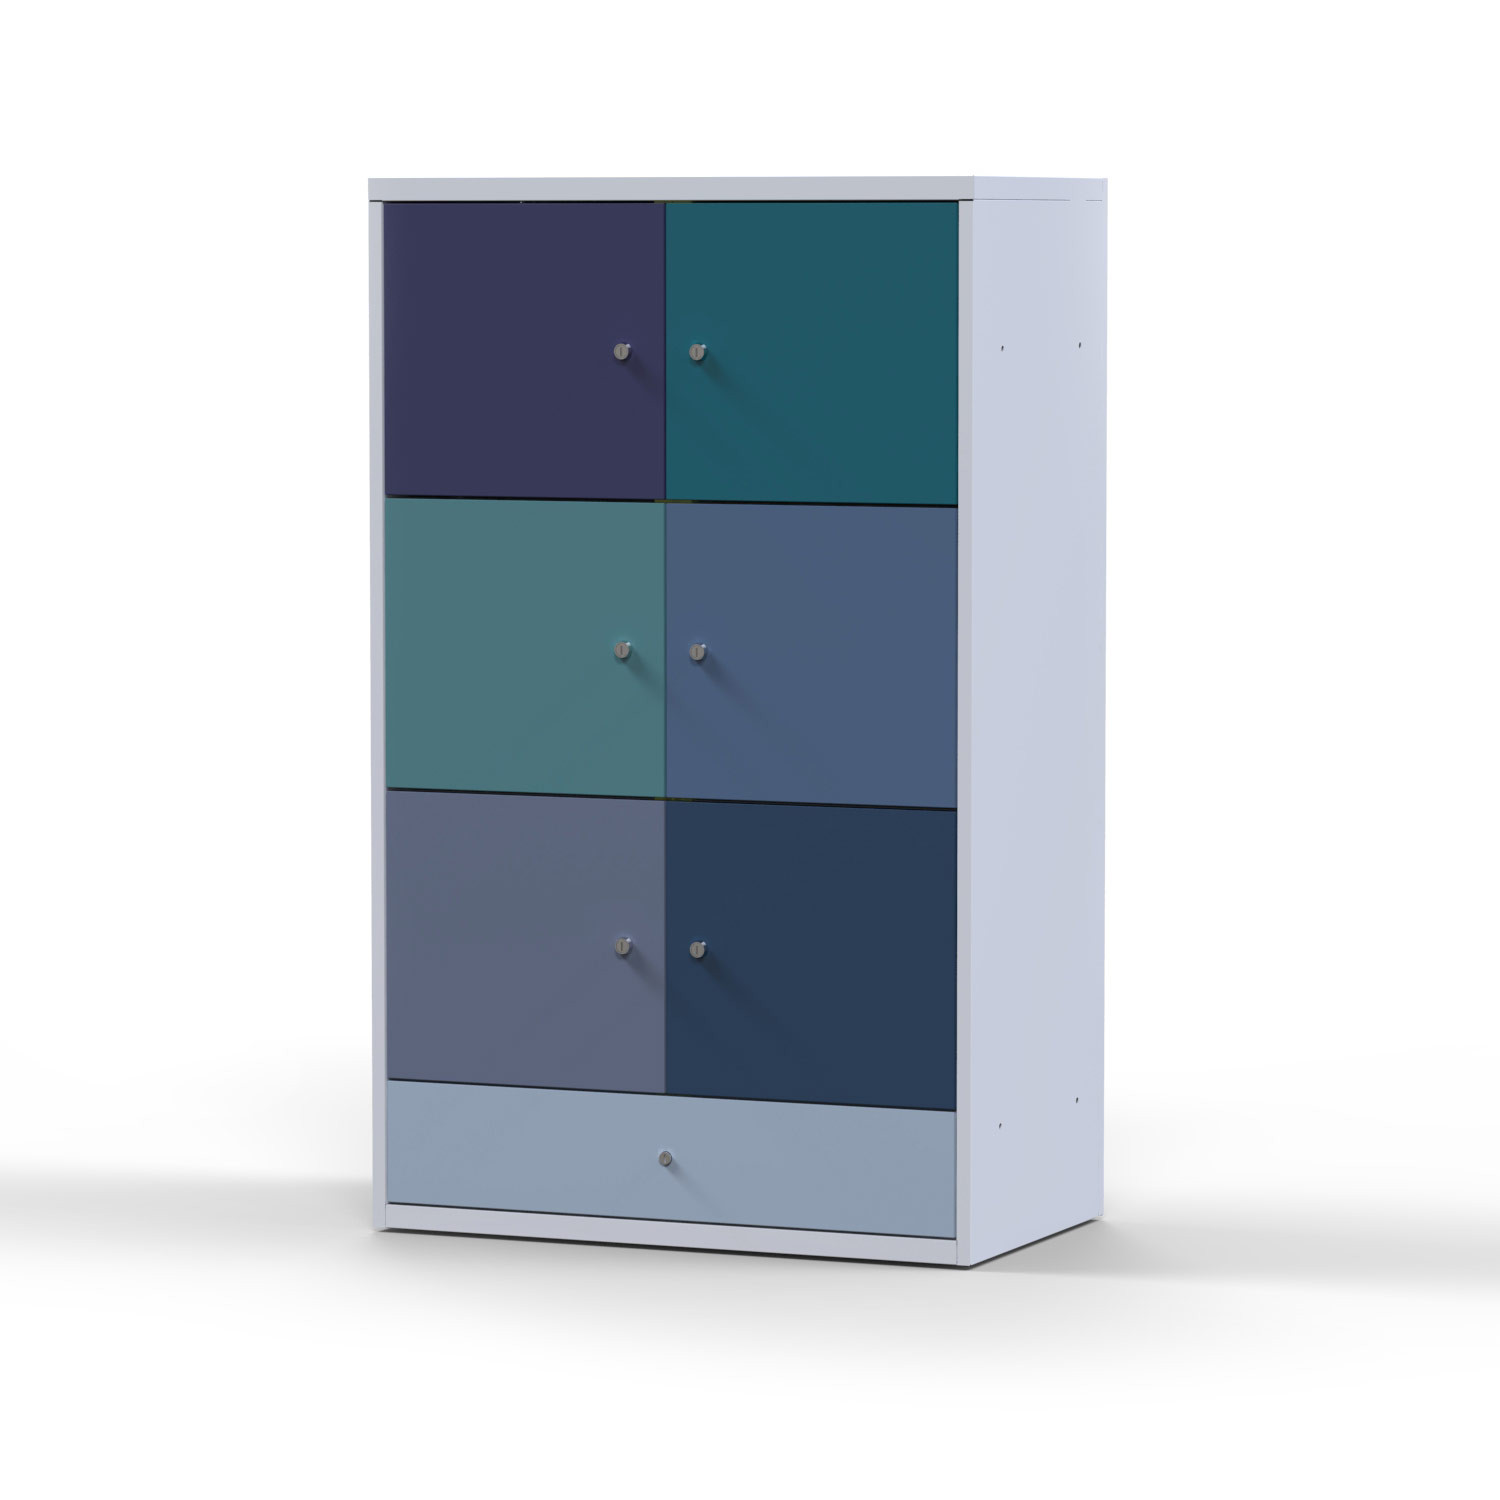 Electrical Personal Lockers